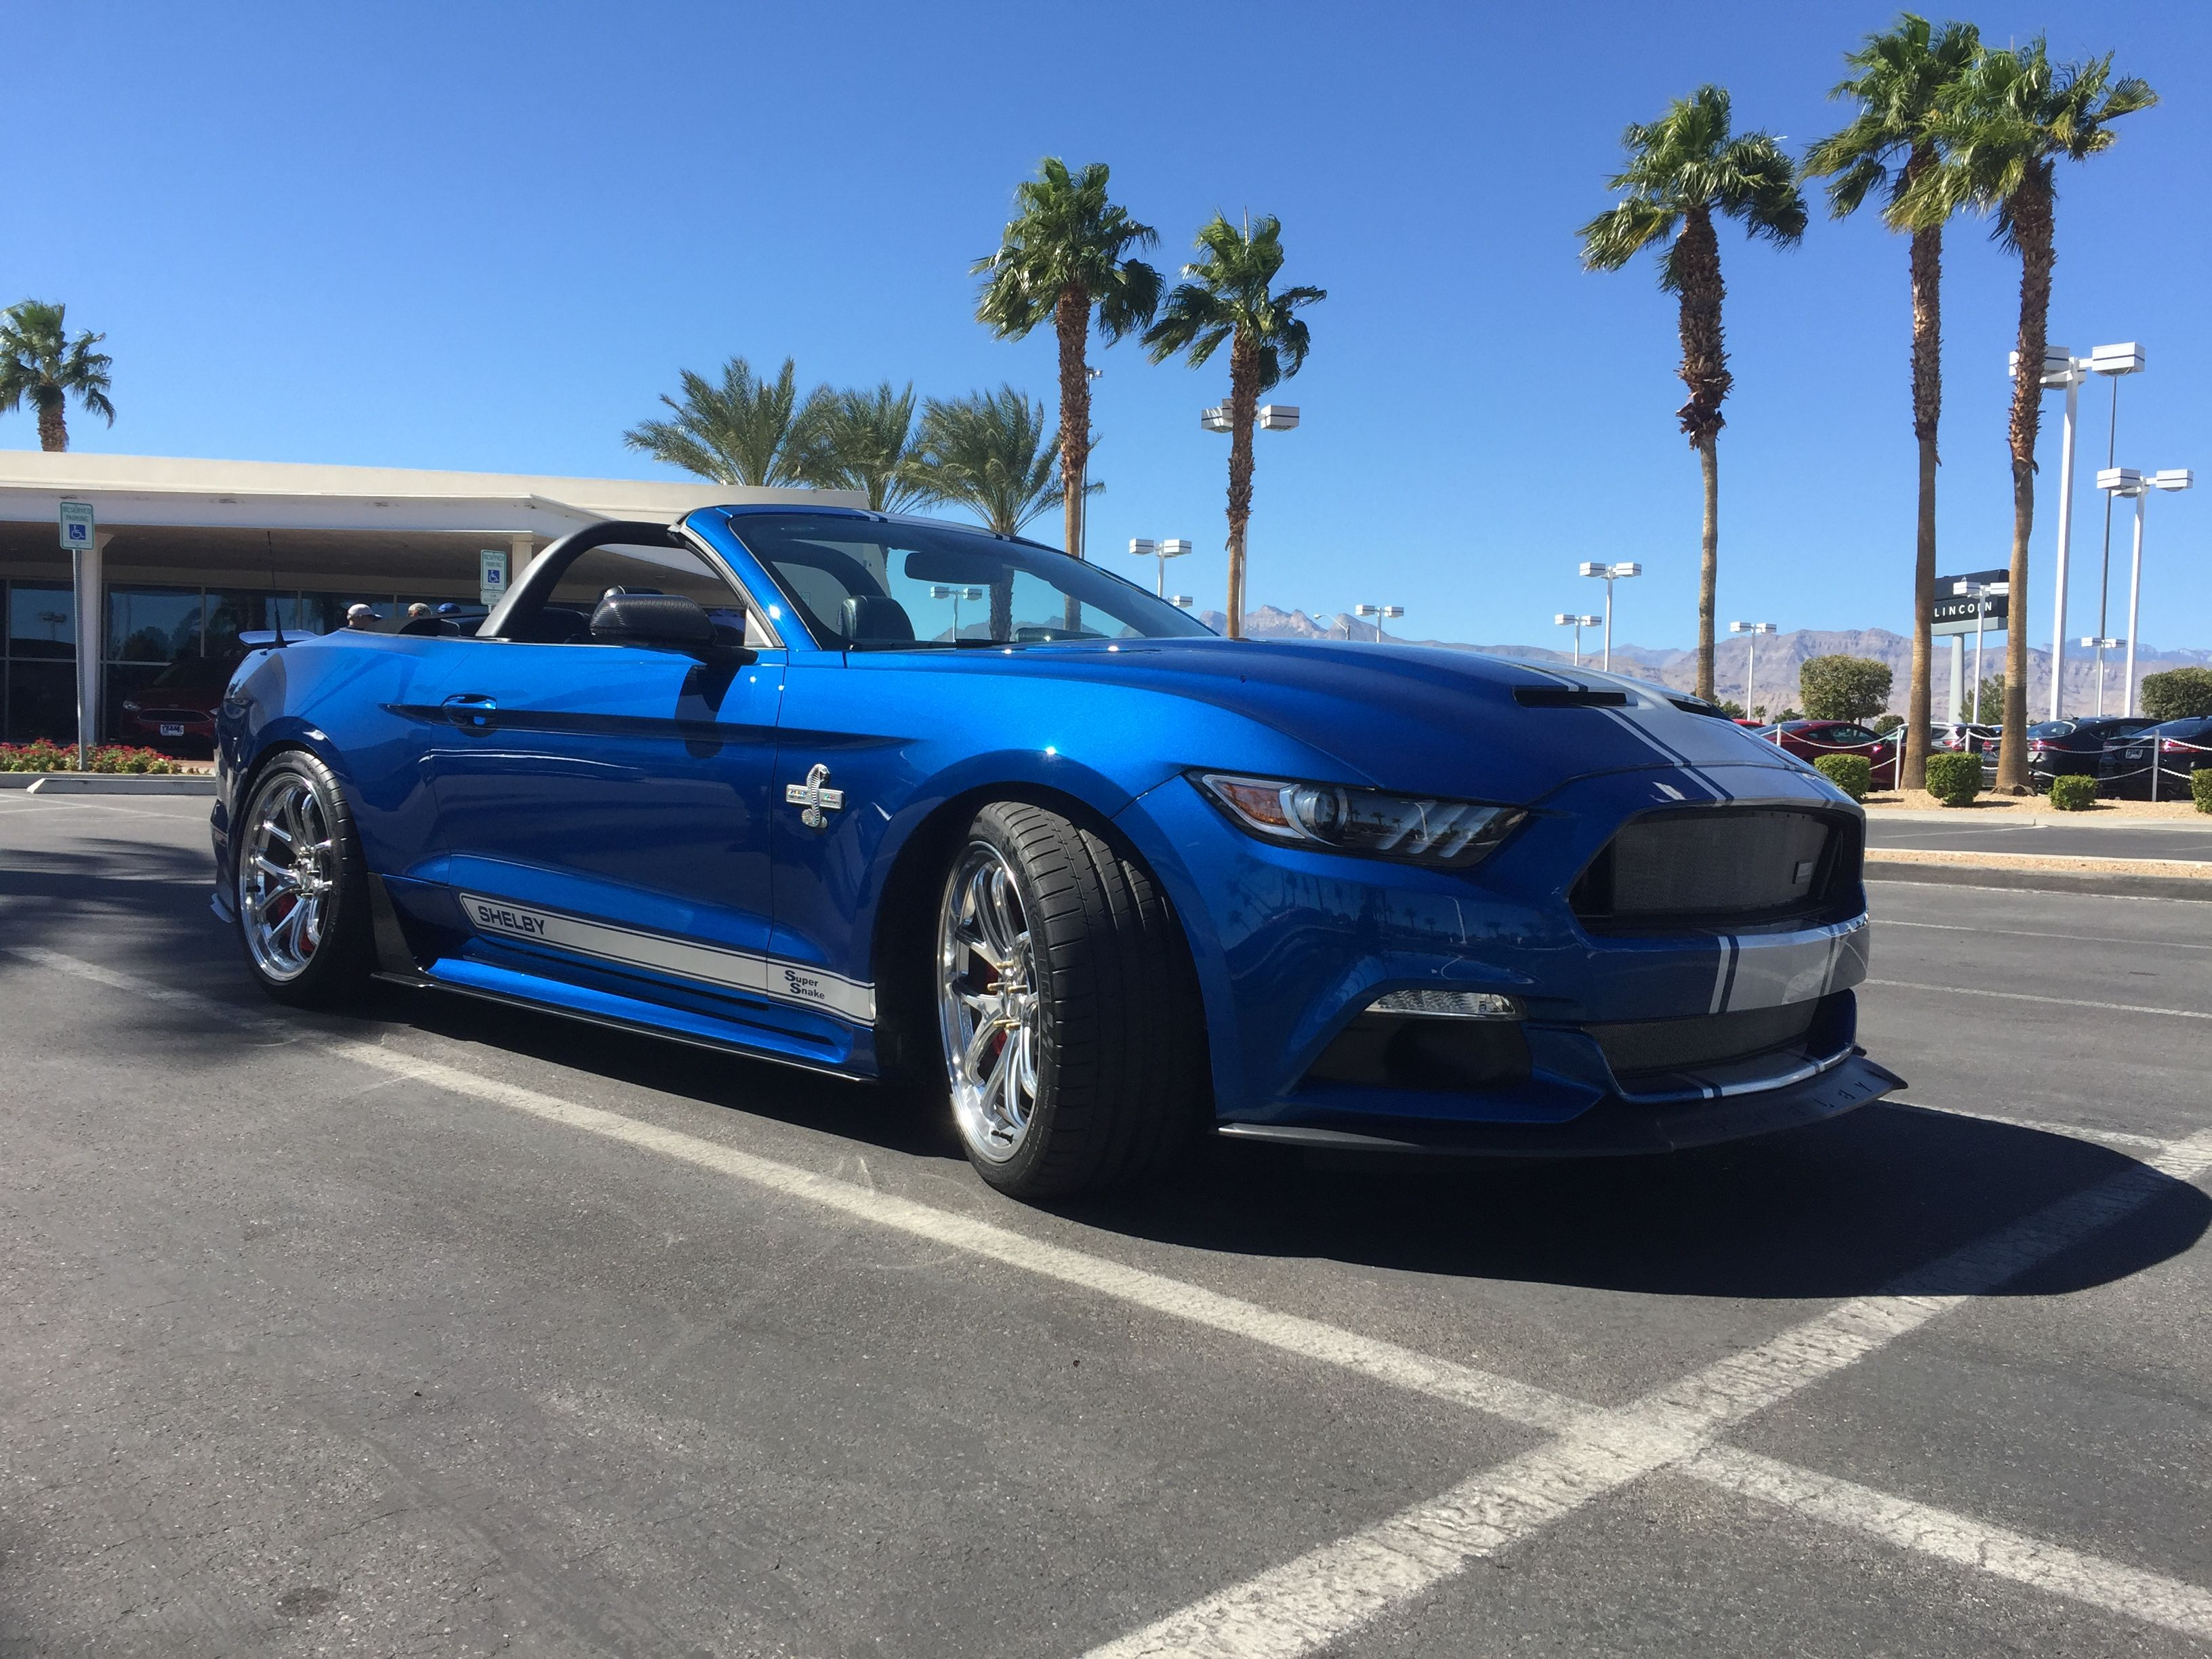 2017 50th Anniversary Shelby Super Snake Convertible One Of In This Particular Color Combination I Sold Car Its Stock Mustang Form